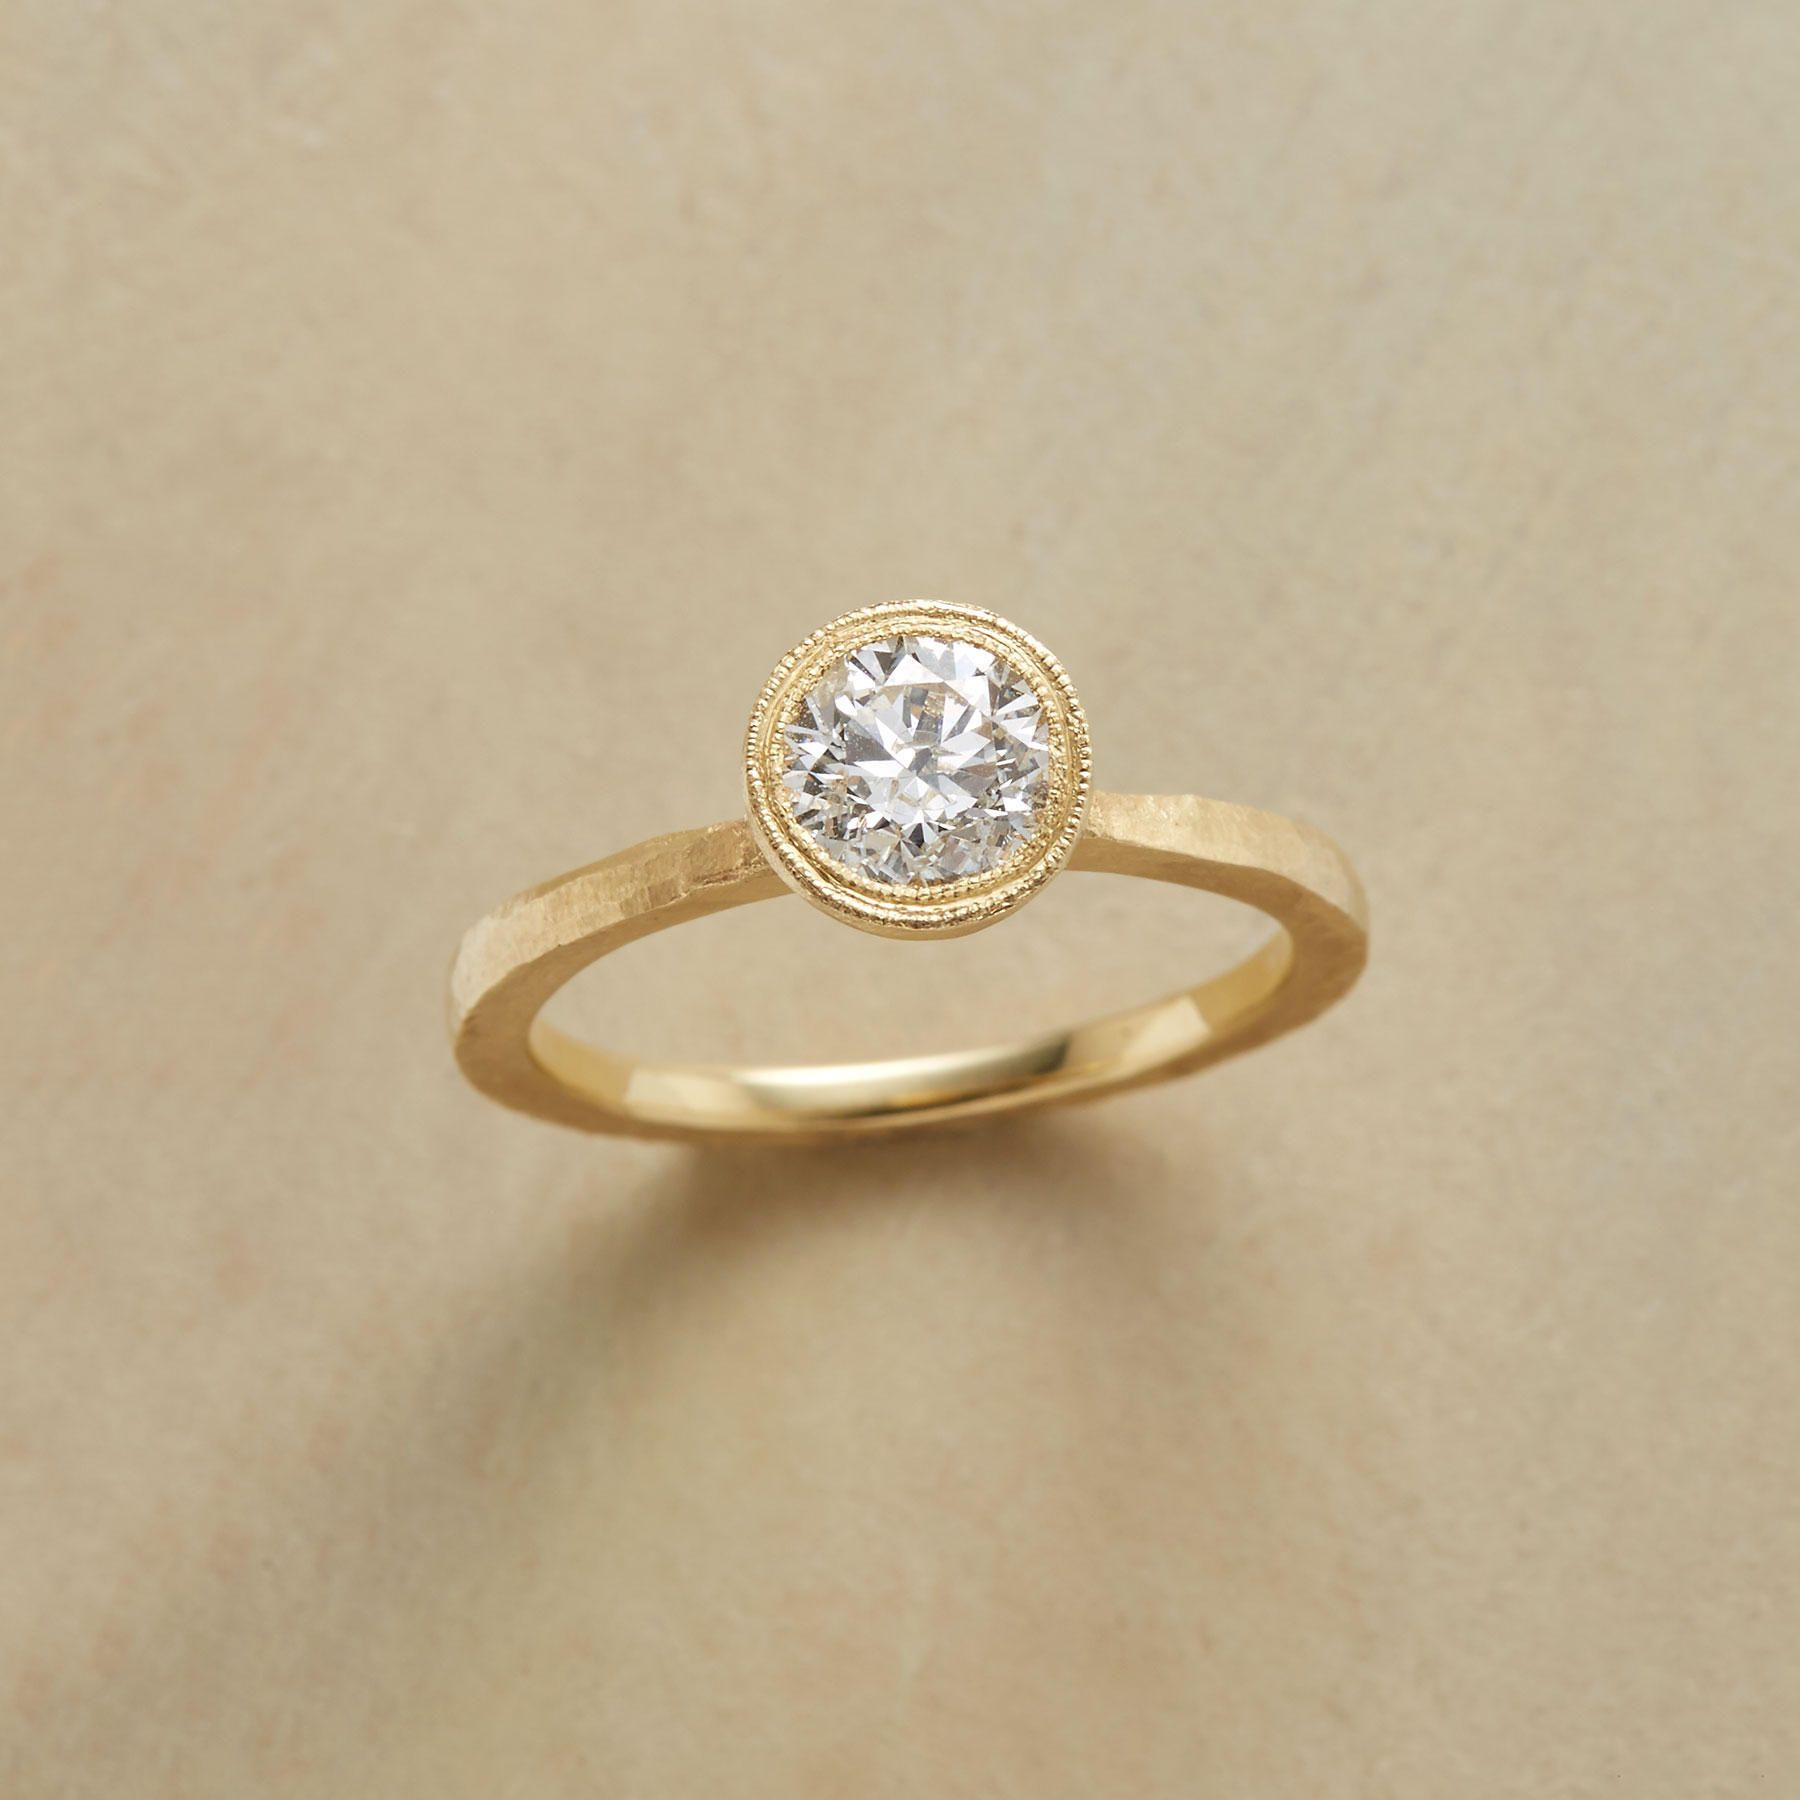 ethical moire m delicate engagement gold rings moissanite subtle products jewelry aide rose ring free conflict